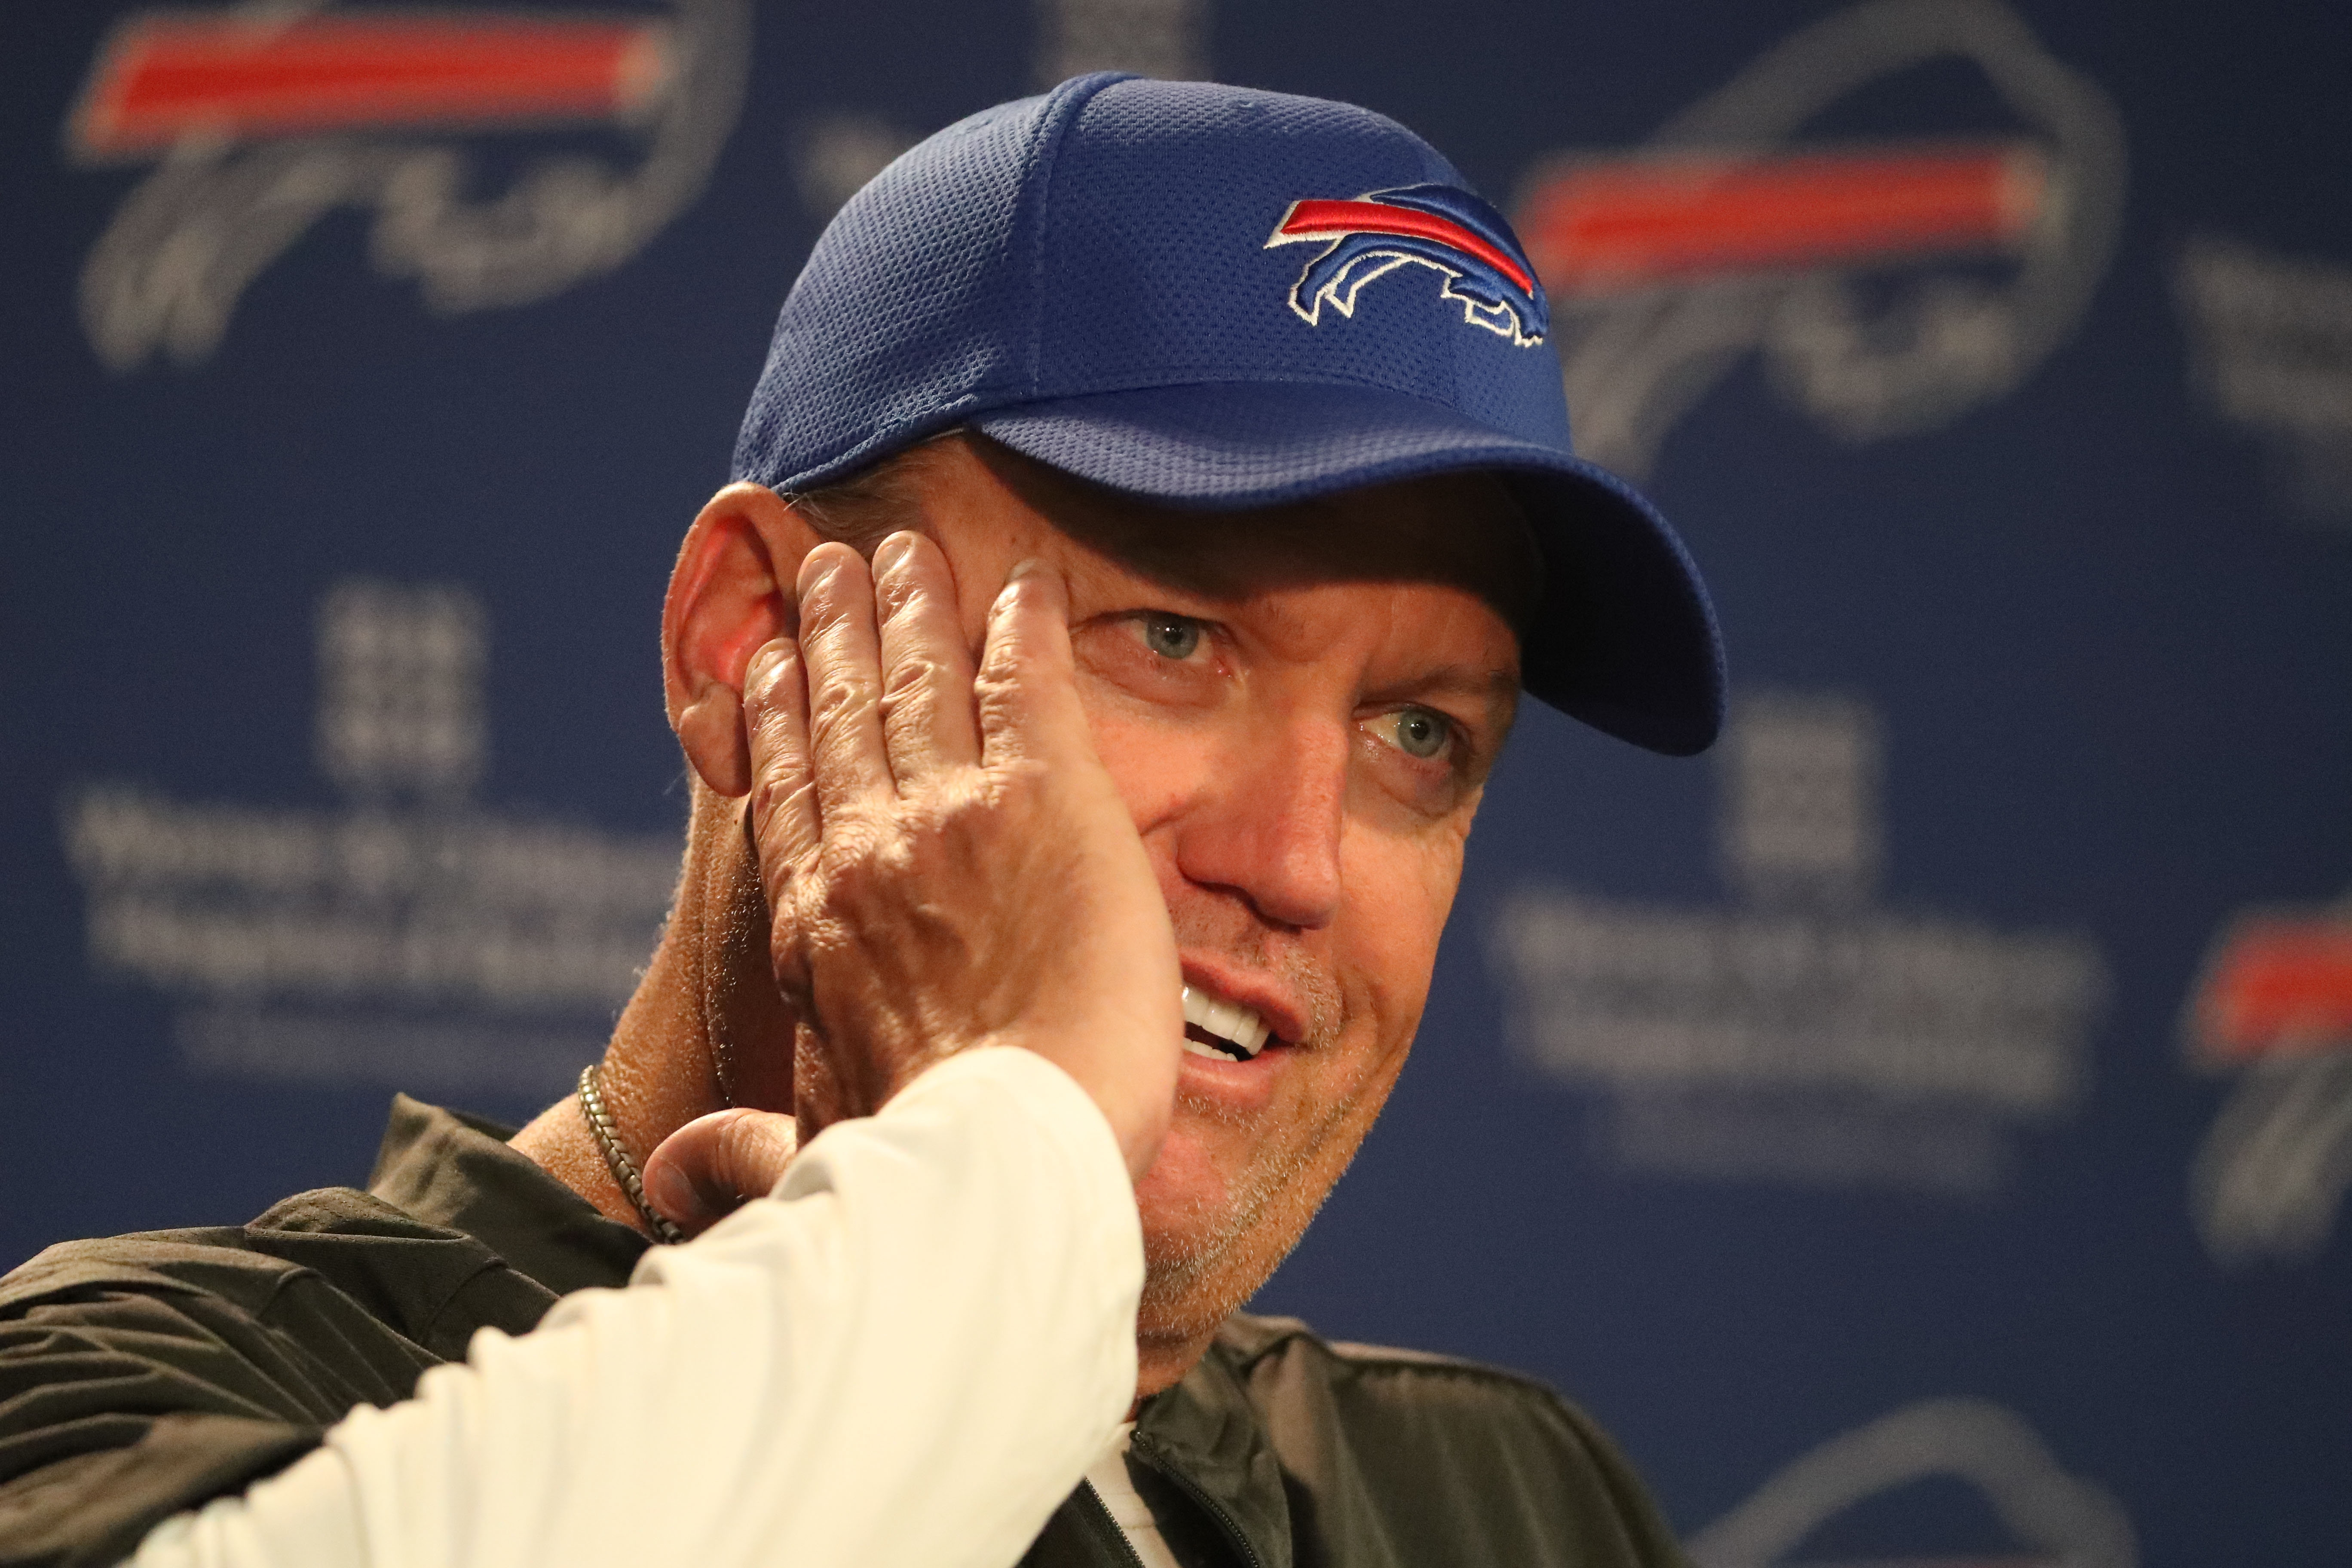 Buffalo Bills head coach Rex Ryan talks to the media during his weekly press conference at ADPRO Sports Training Center media room in Orchard Park,MD on Monday, Sept. 12, 2016.  (James P. McCoy/ Buffalo News)